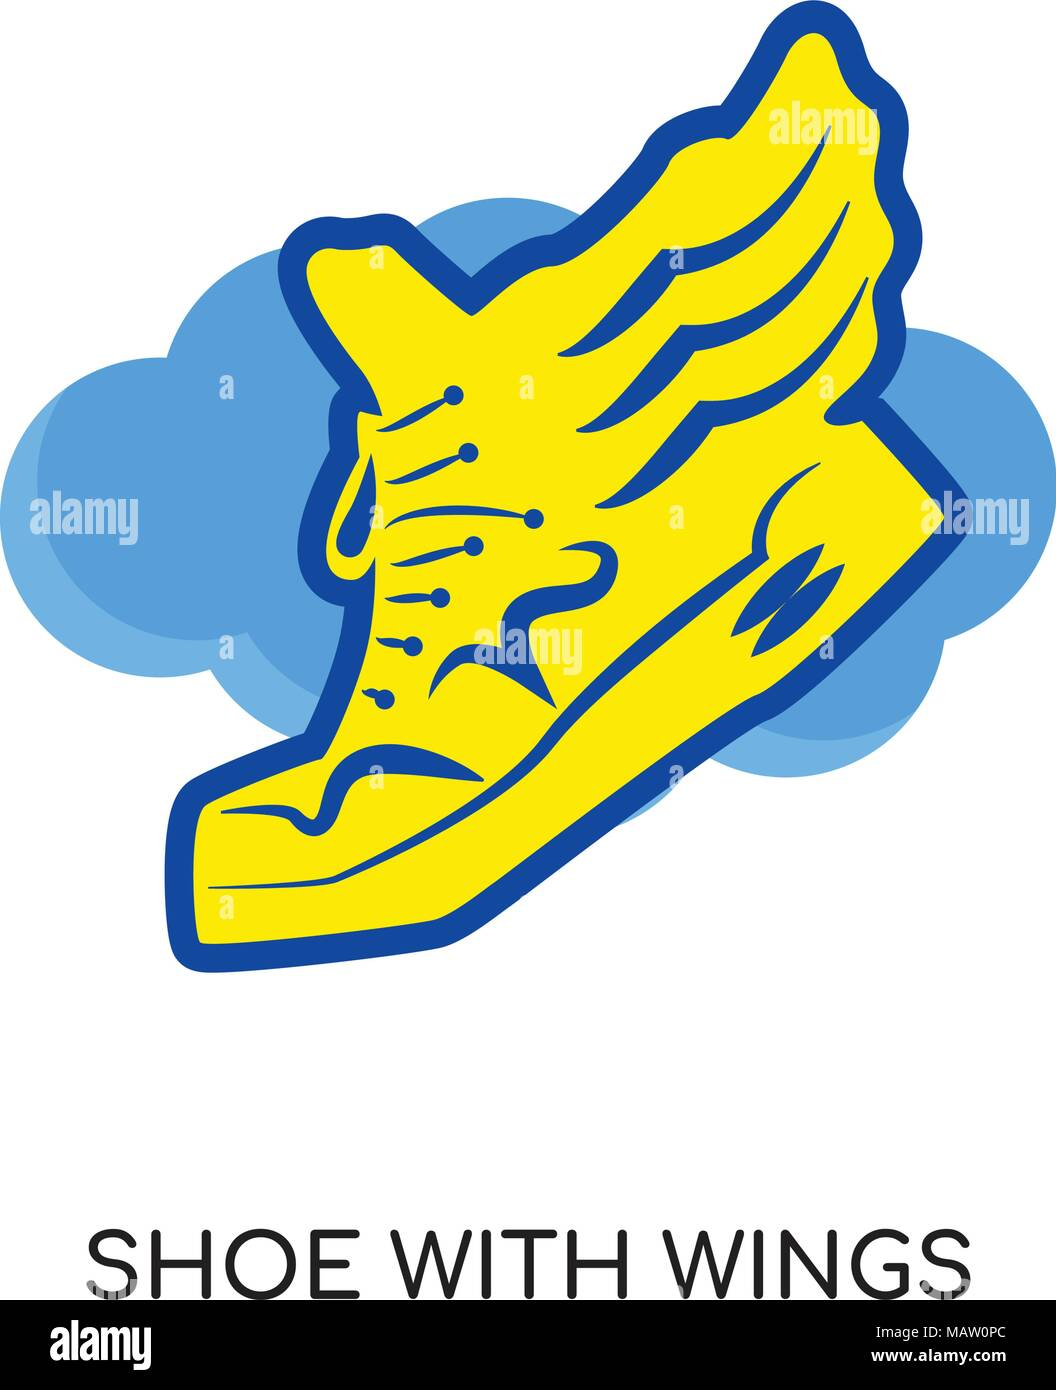 shoe with wings logo isolated on white background for your web rh alamy com shoe with wings logo quiz shoe with wings logo yellow